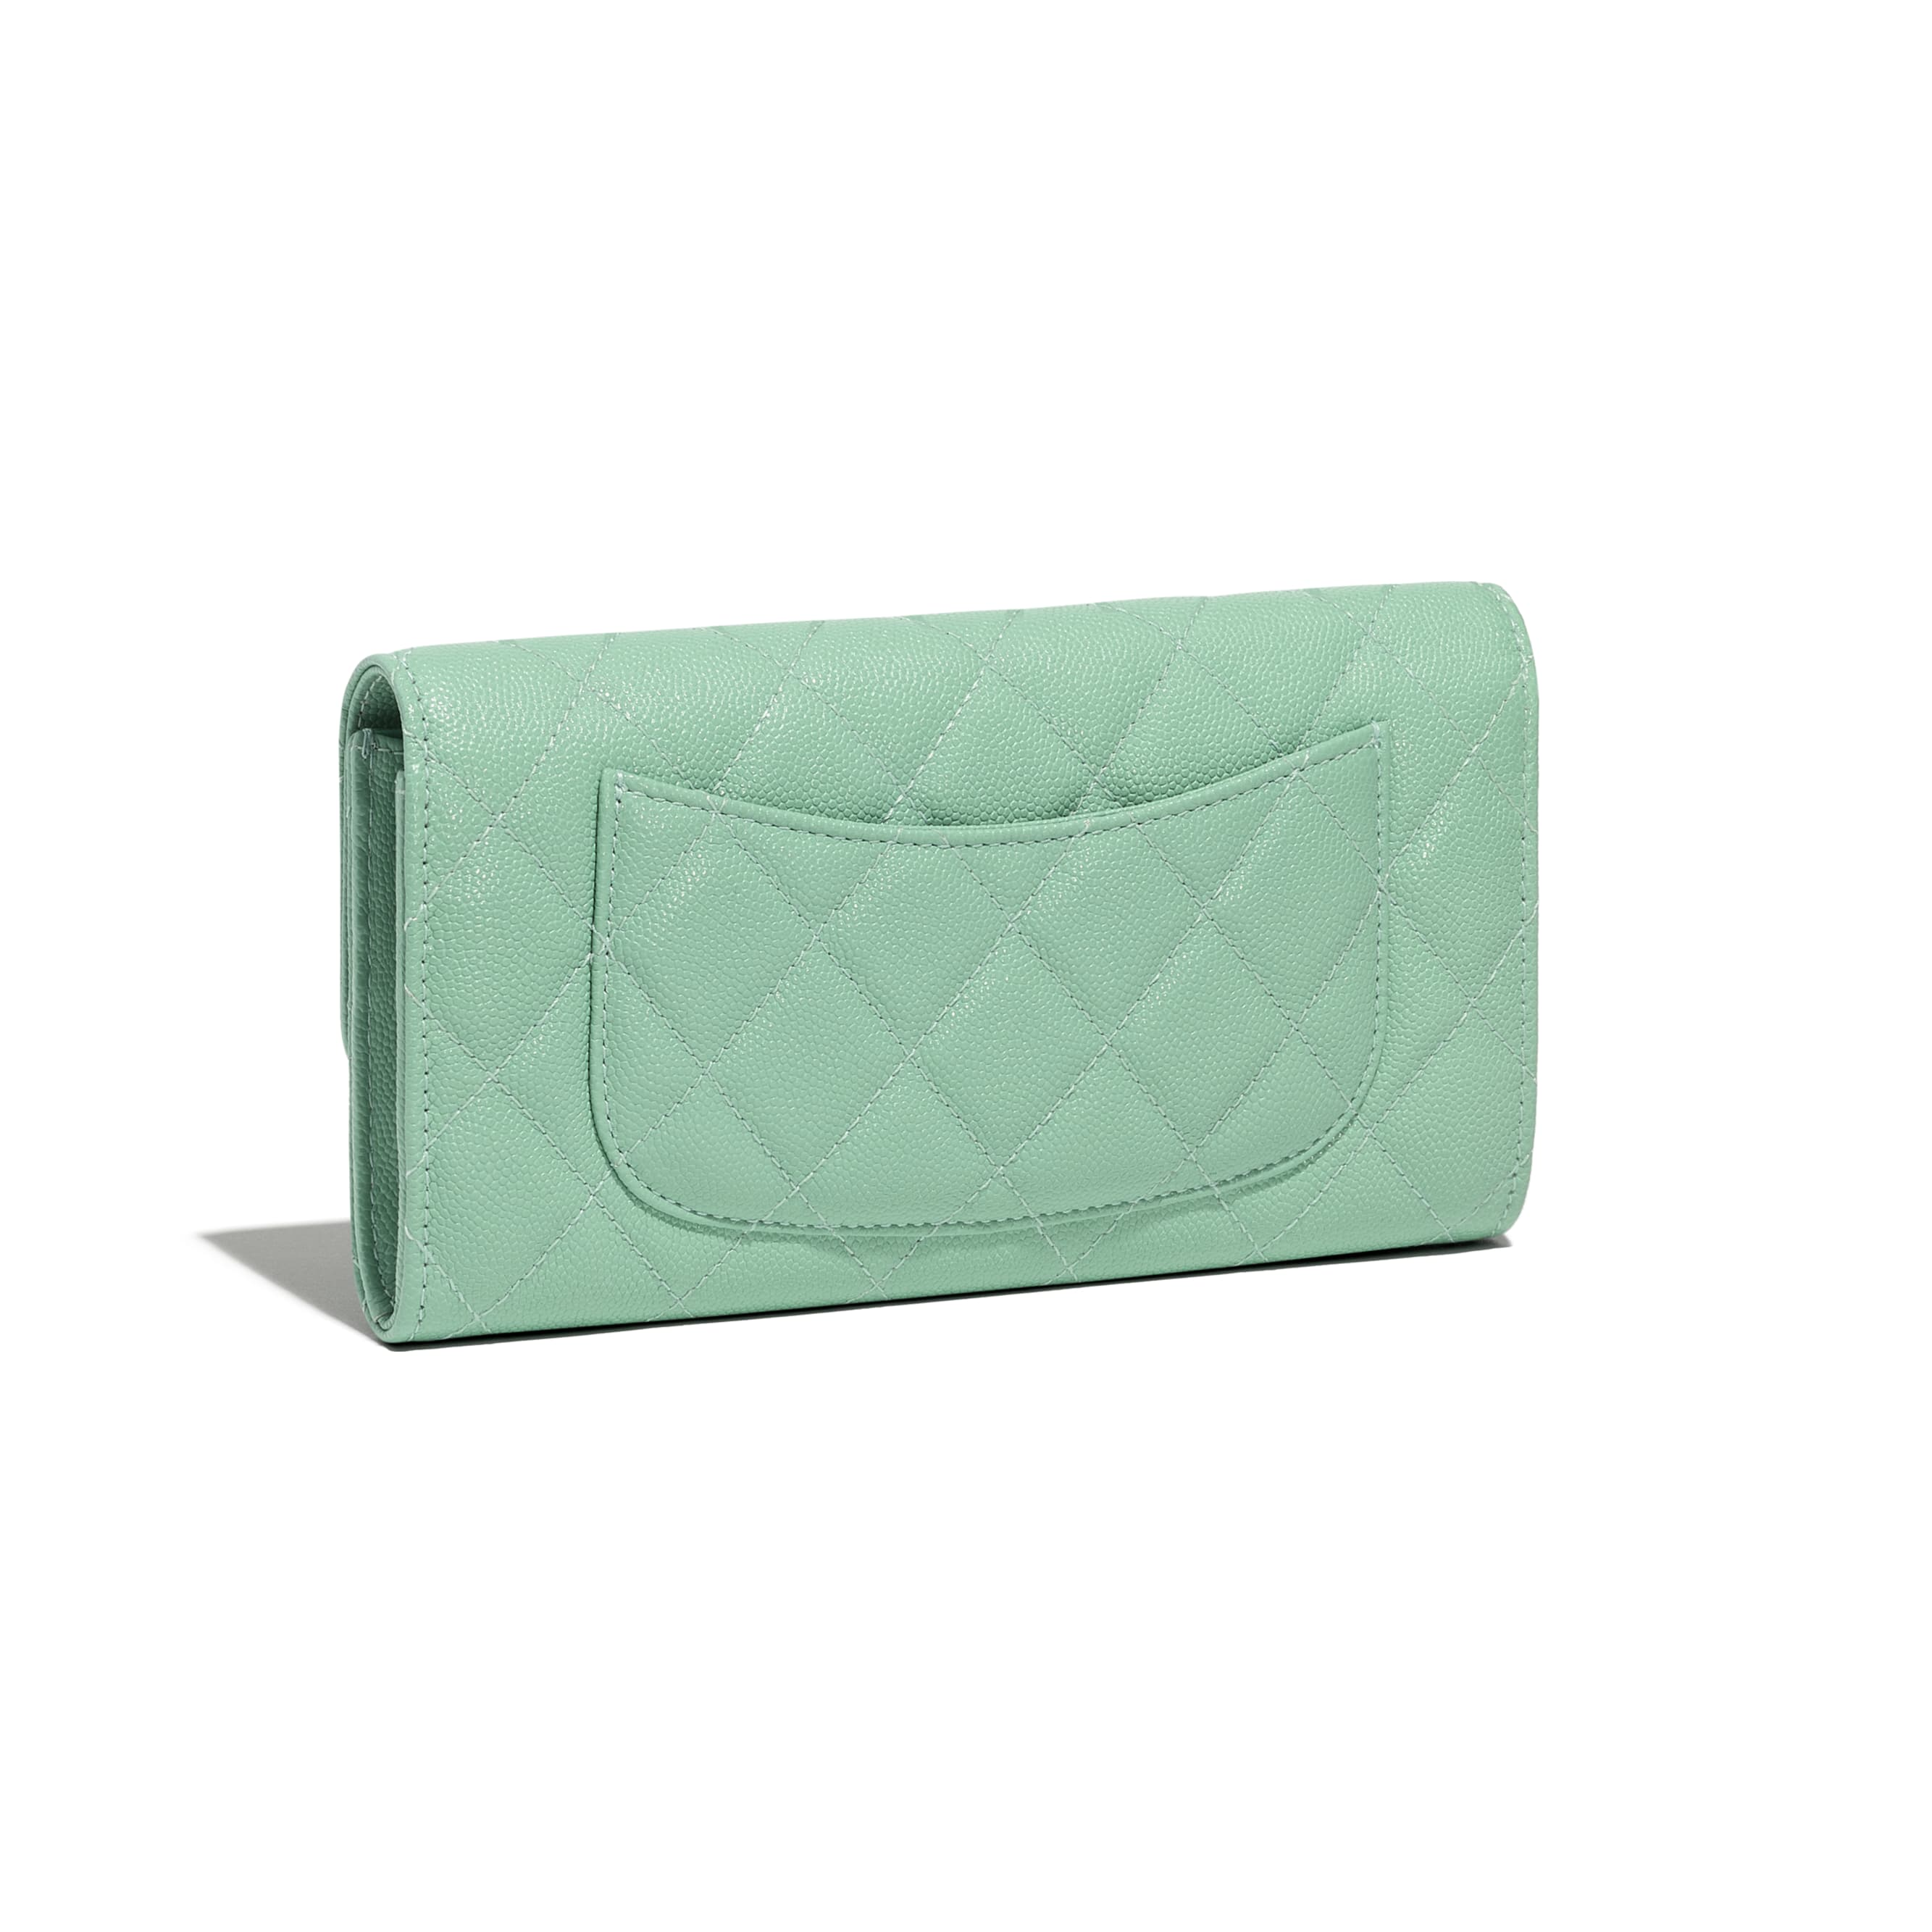 Classic Long Flap Wallet - Green - Grained Calfskin & Gold-Tone Metal - CHANEL - Extra view - see standard sized version